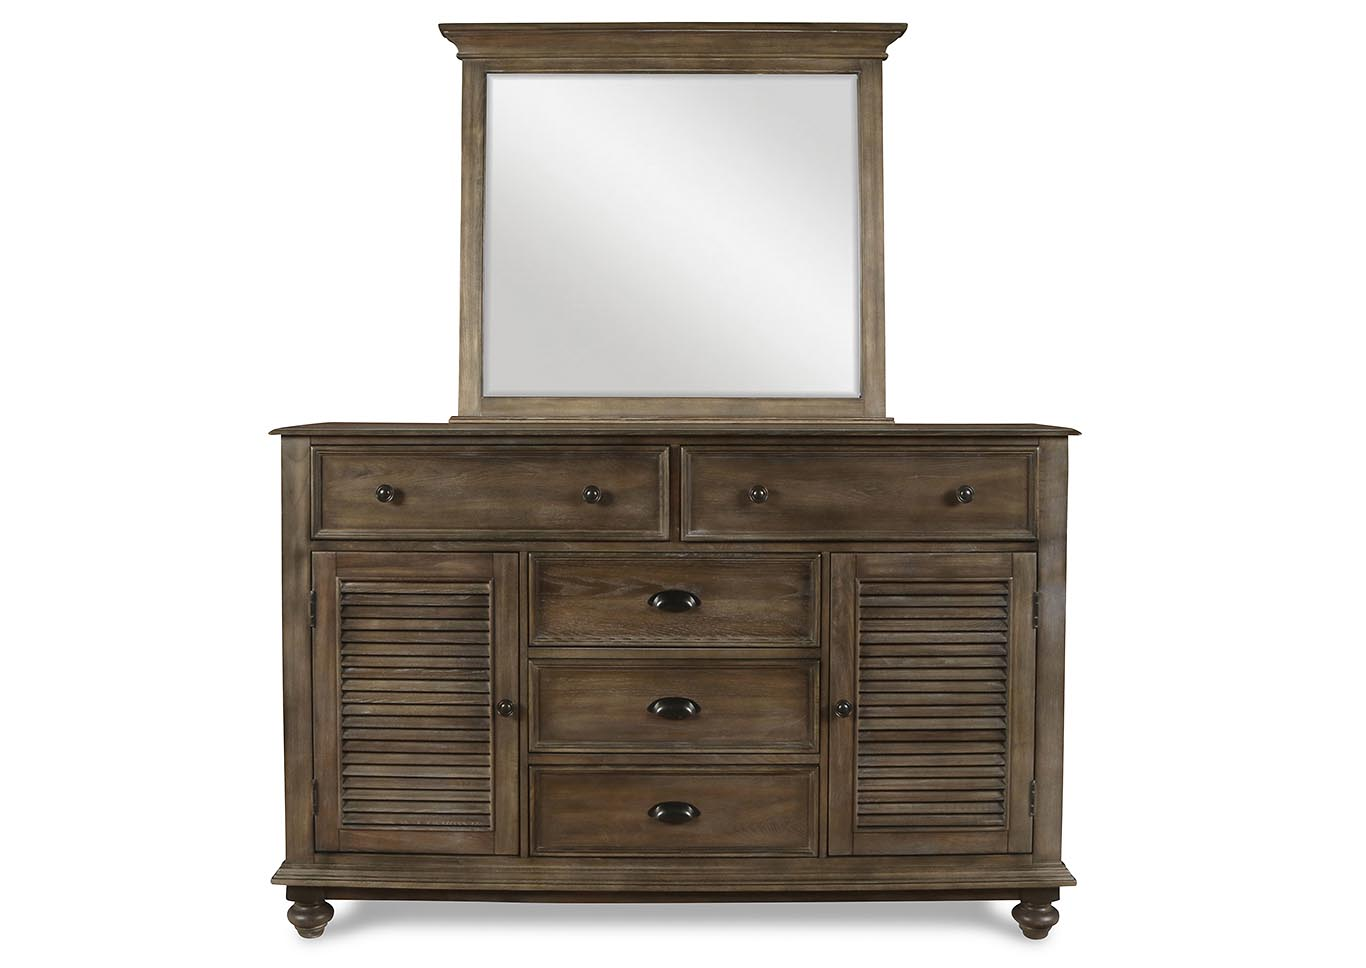 Lakeport Pewter Dresser and Mirror,New Classic